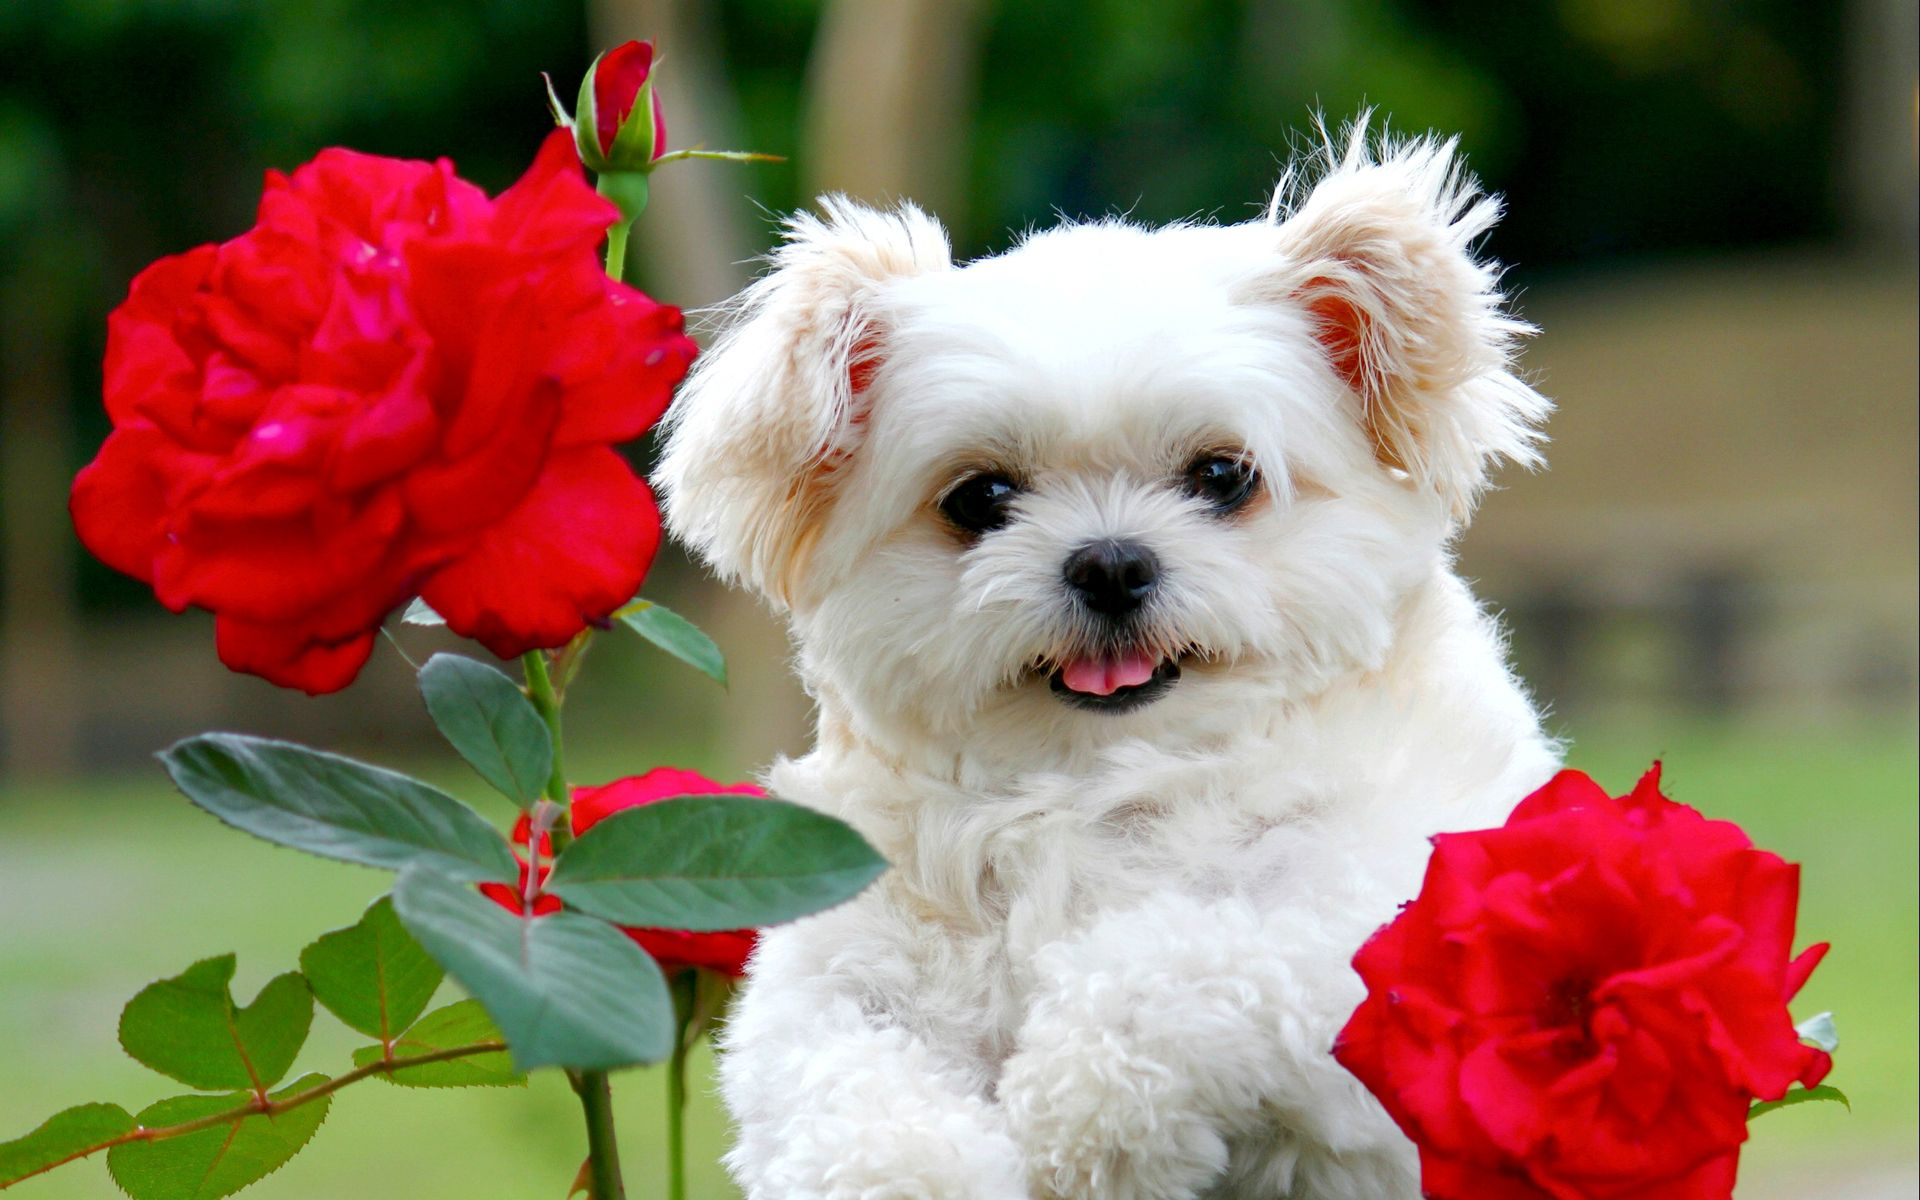 coffie cute puppy wallpaper download free cute puppy wallpaper